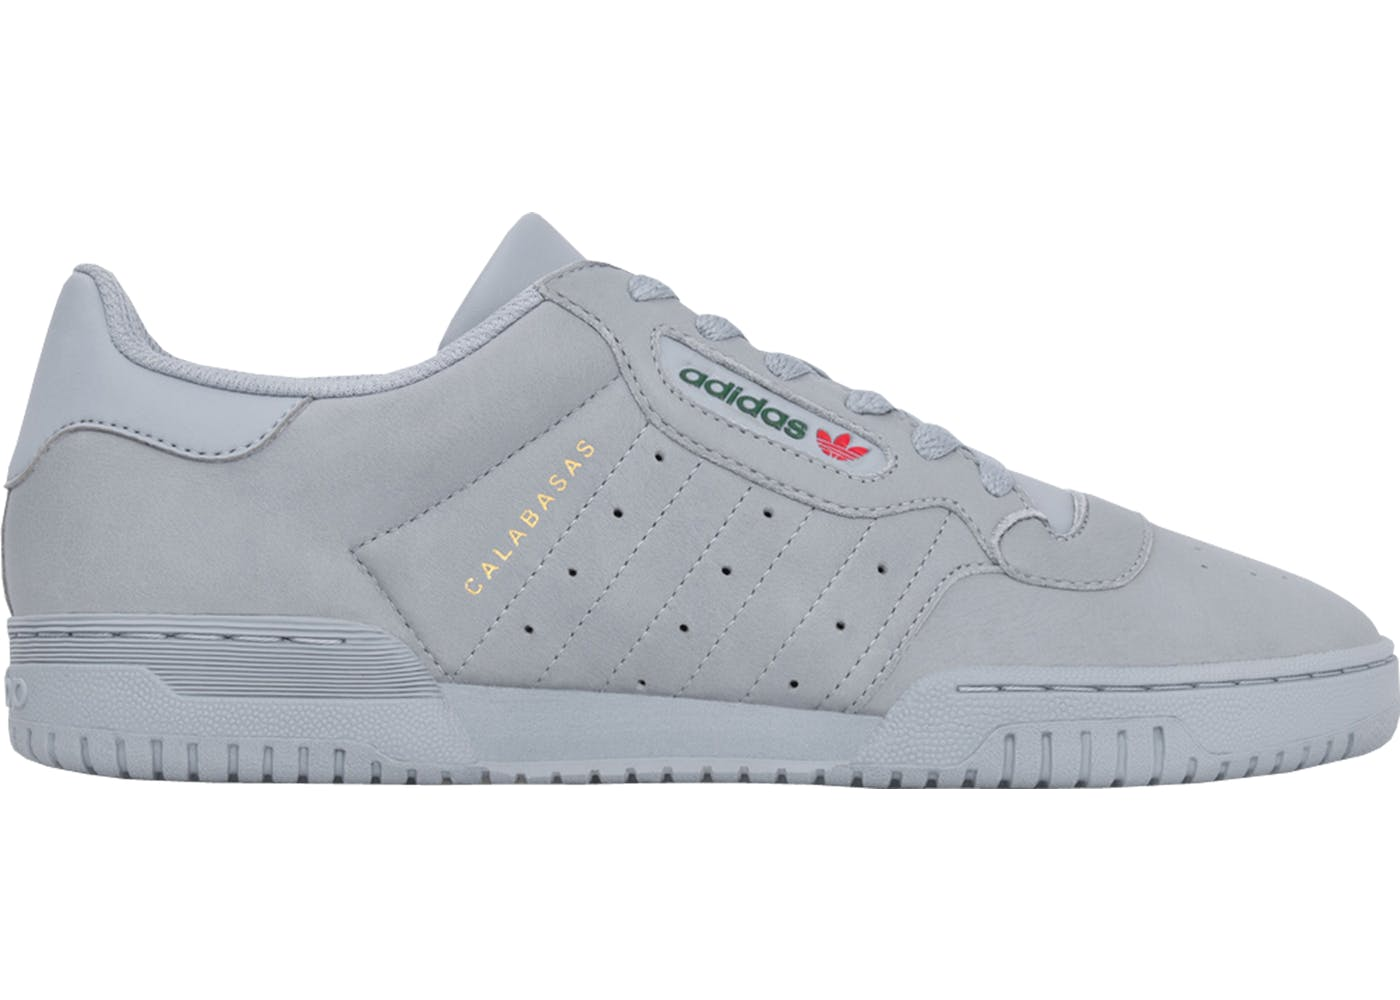 Adidas-Yeezy-Powerphase-Calabasas-Grey.jpeg